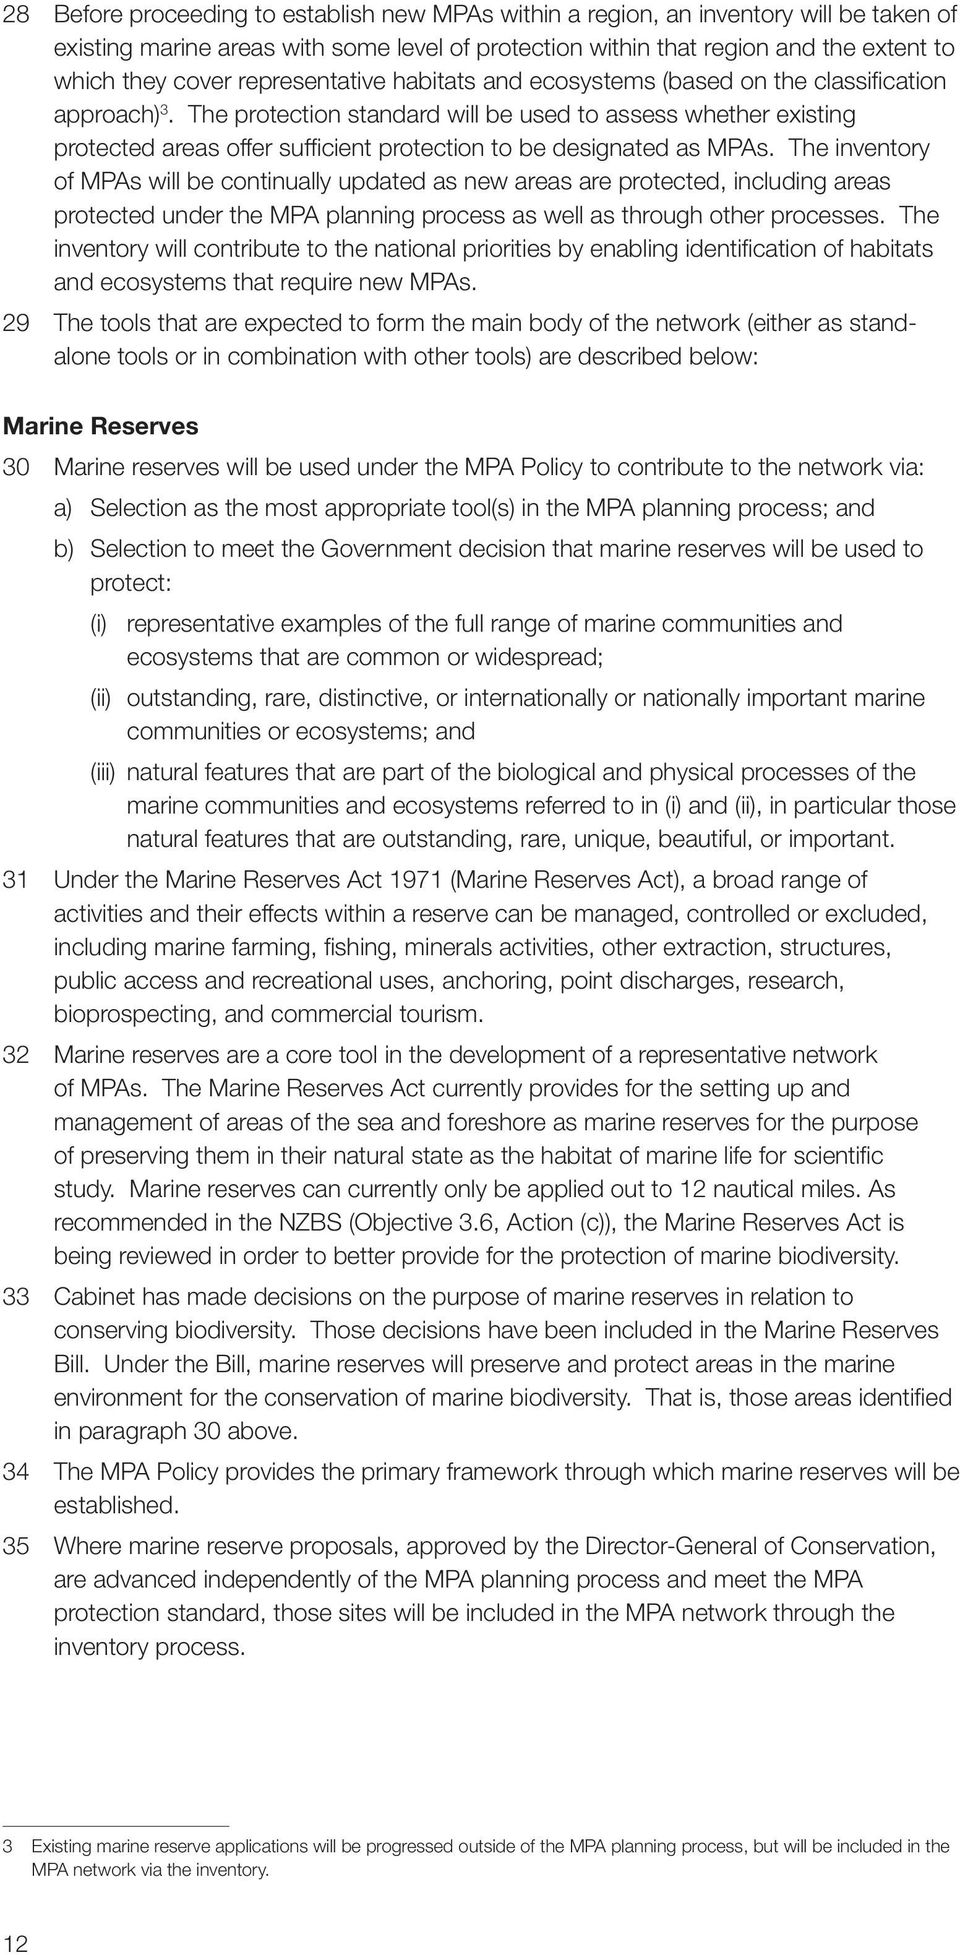 The protection standard will be used to assess whether existing protected areas offer sufficient protection to be designated as MPAs.